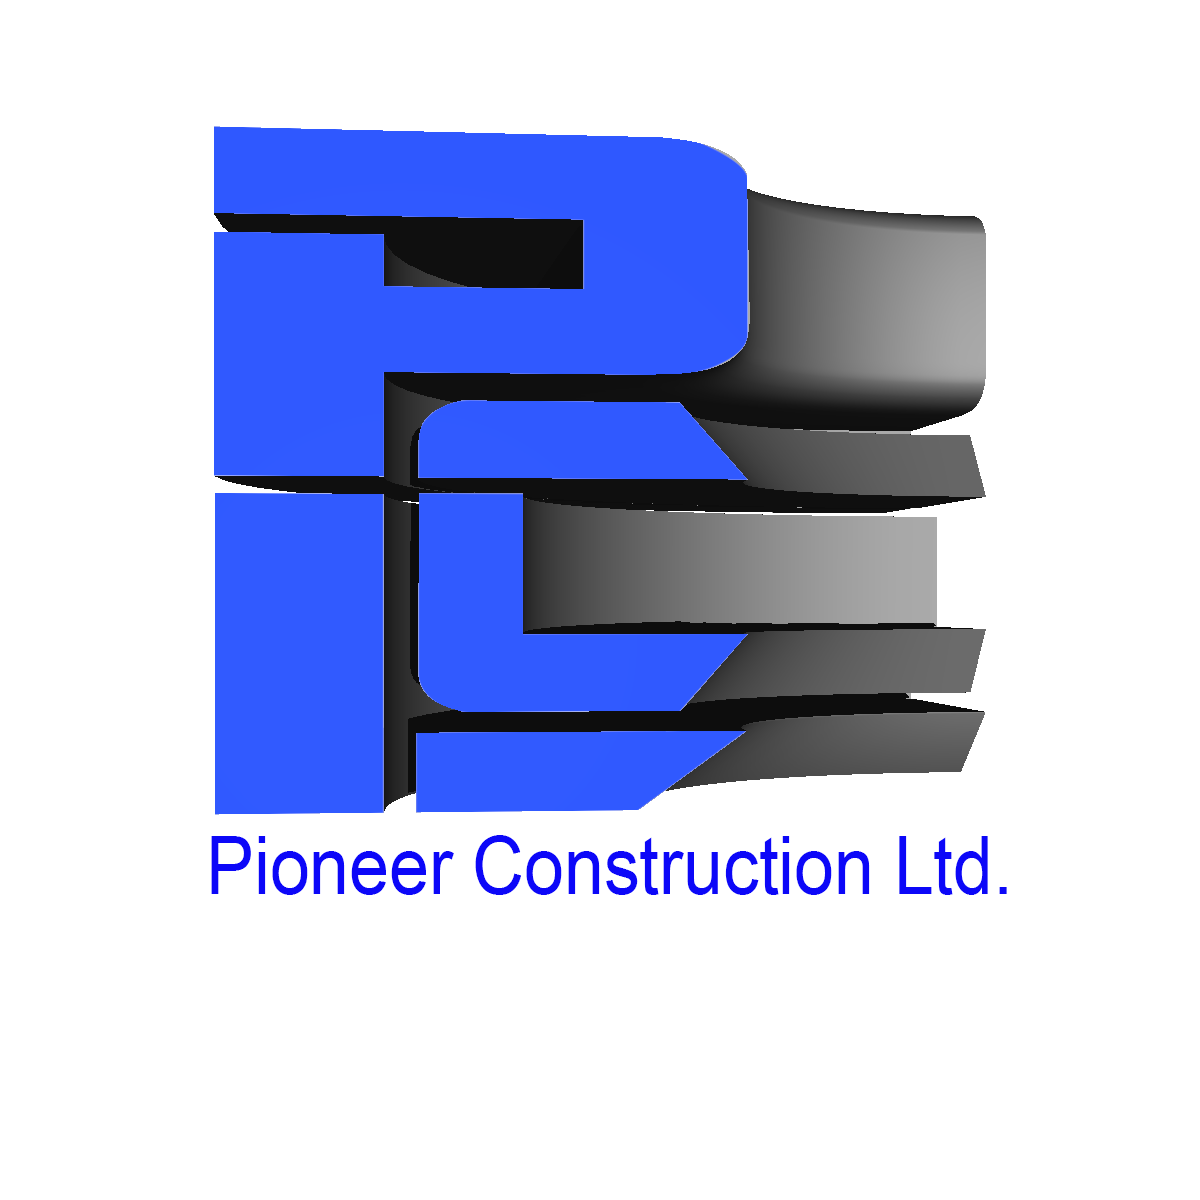 Logo Design by Private User - Entry No. 70 in the Logo Design Contest Imaginative Logo Design for  Pioneer Construction Ltd.